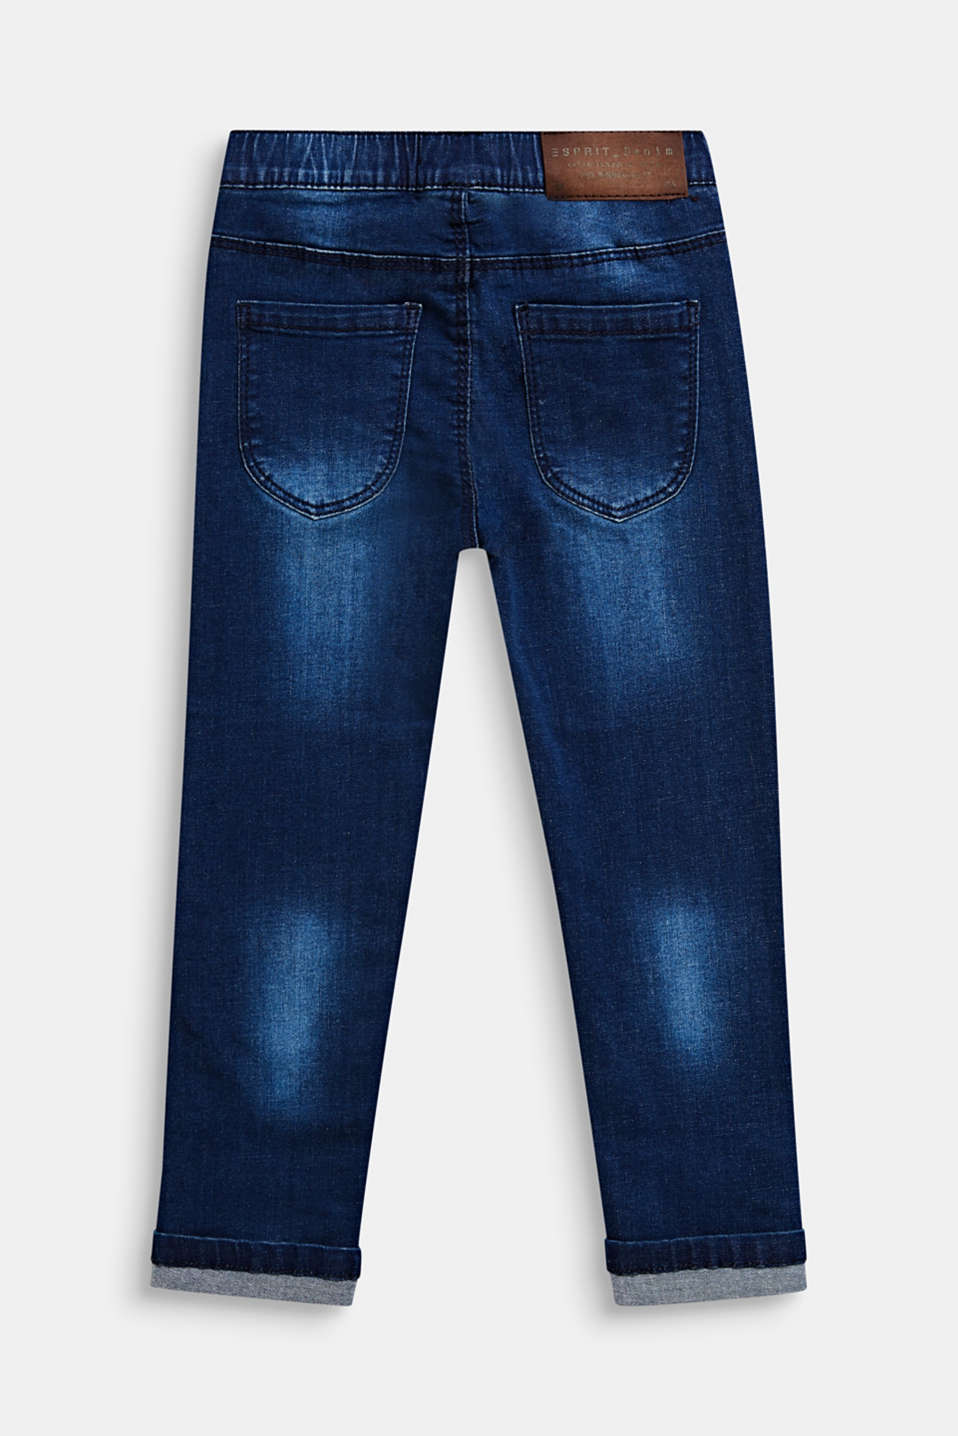 Heart pattern stretch jeans with an elasticated waistband, DARK INDIGO DE, detail image number 1